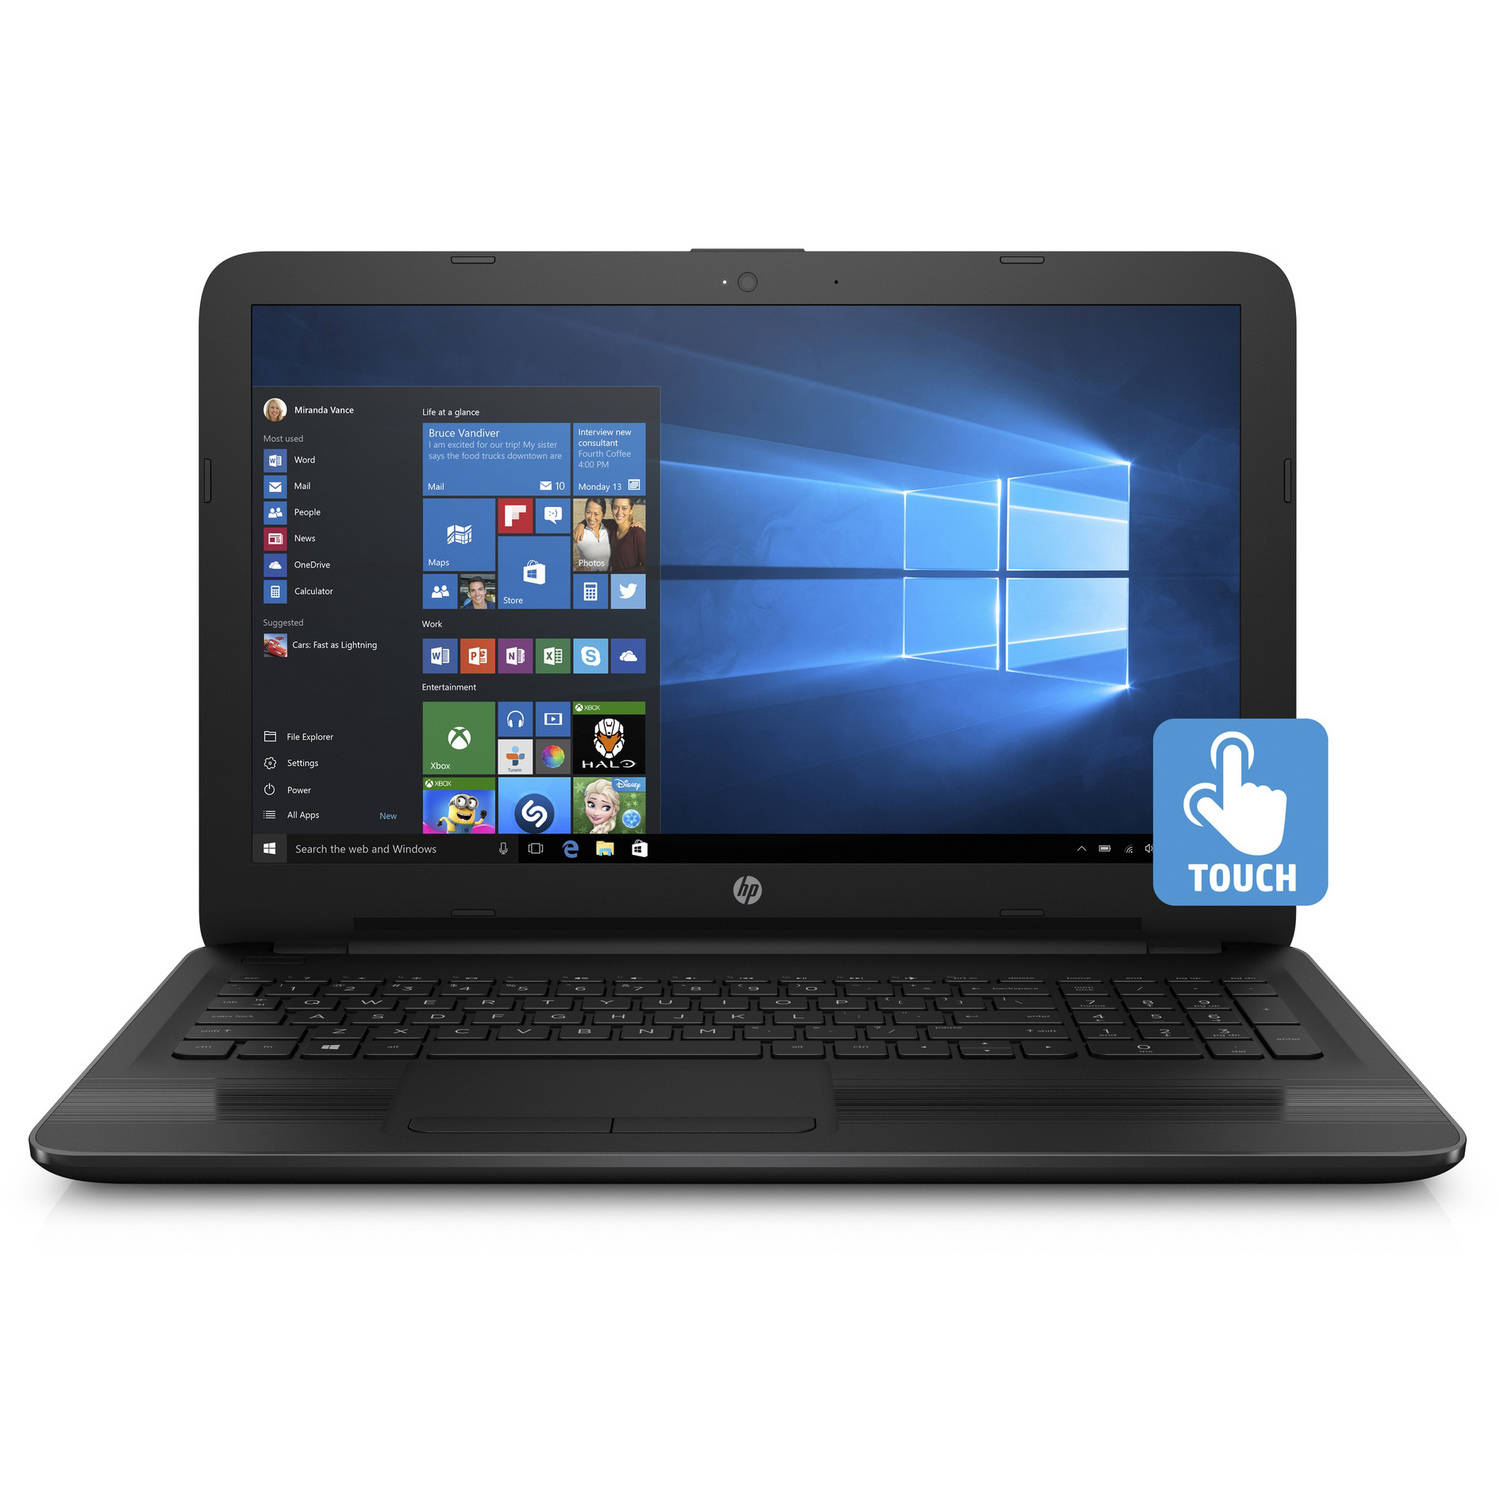 "HP 15-ba043wm 15.6"" Laptop, Touchscreen, Windows 10 Home, AMD A10-9600P APU Processor, 8GB RAM, 1TB Hard... by HP"